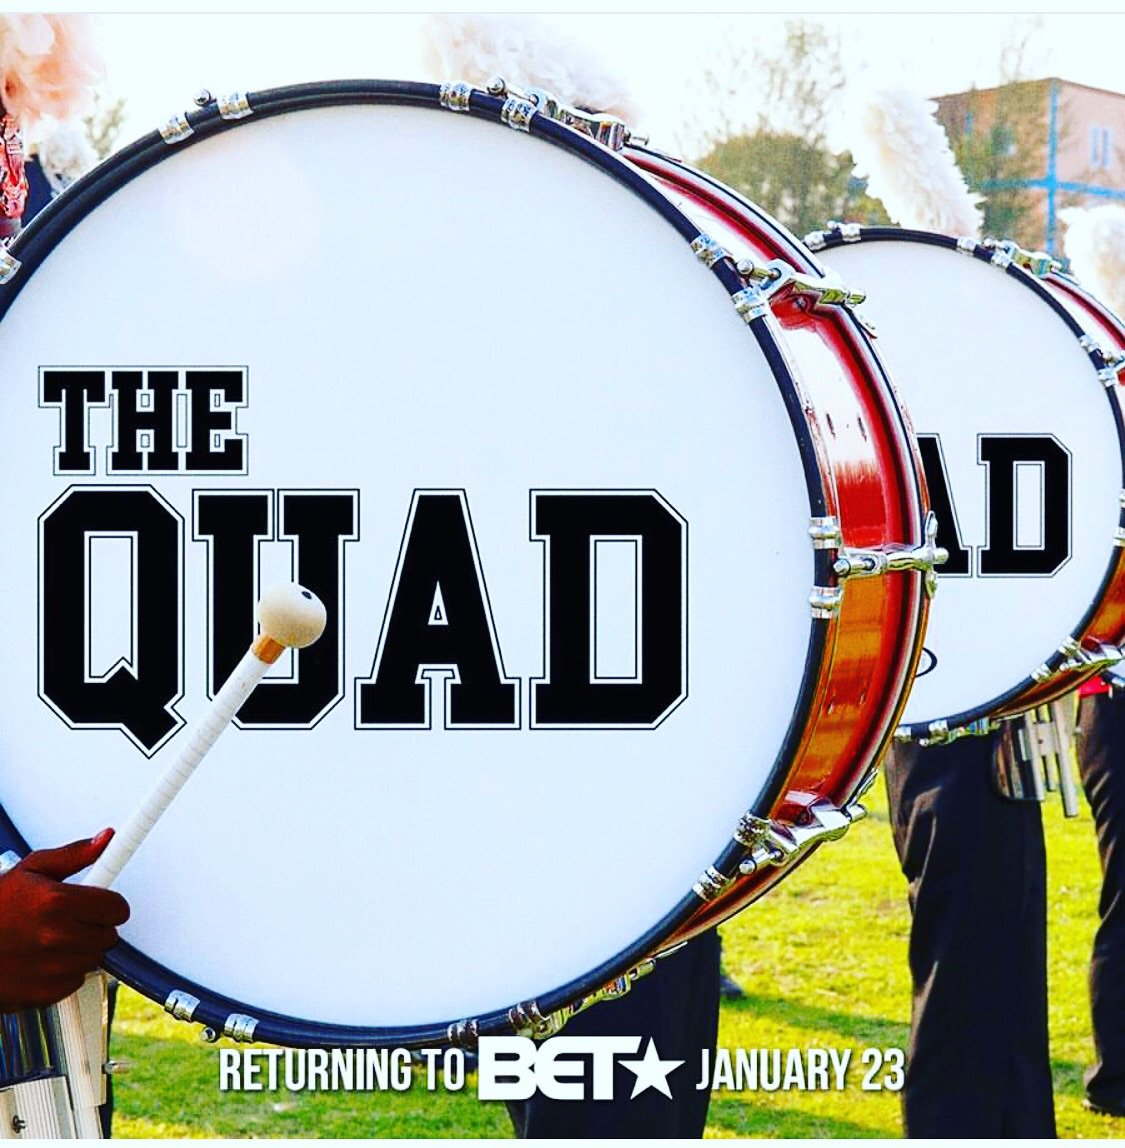 """Check me out on Season 2 of """" The Quad """" on @BET , Starts this week ! 🎬 #Weoutchea https://t.co/twAcV0Ek3l"""